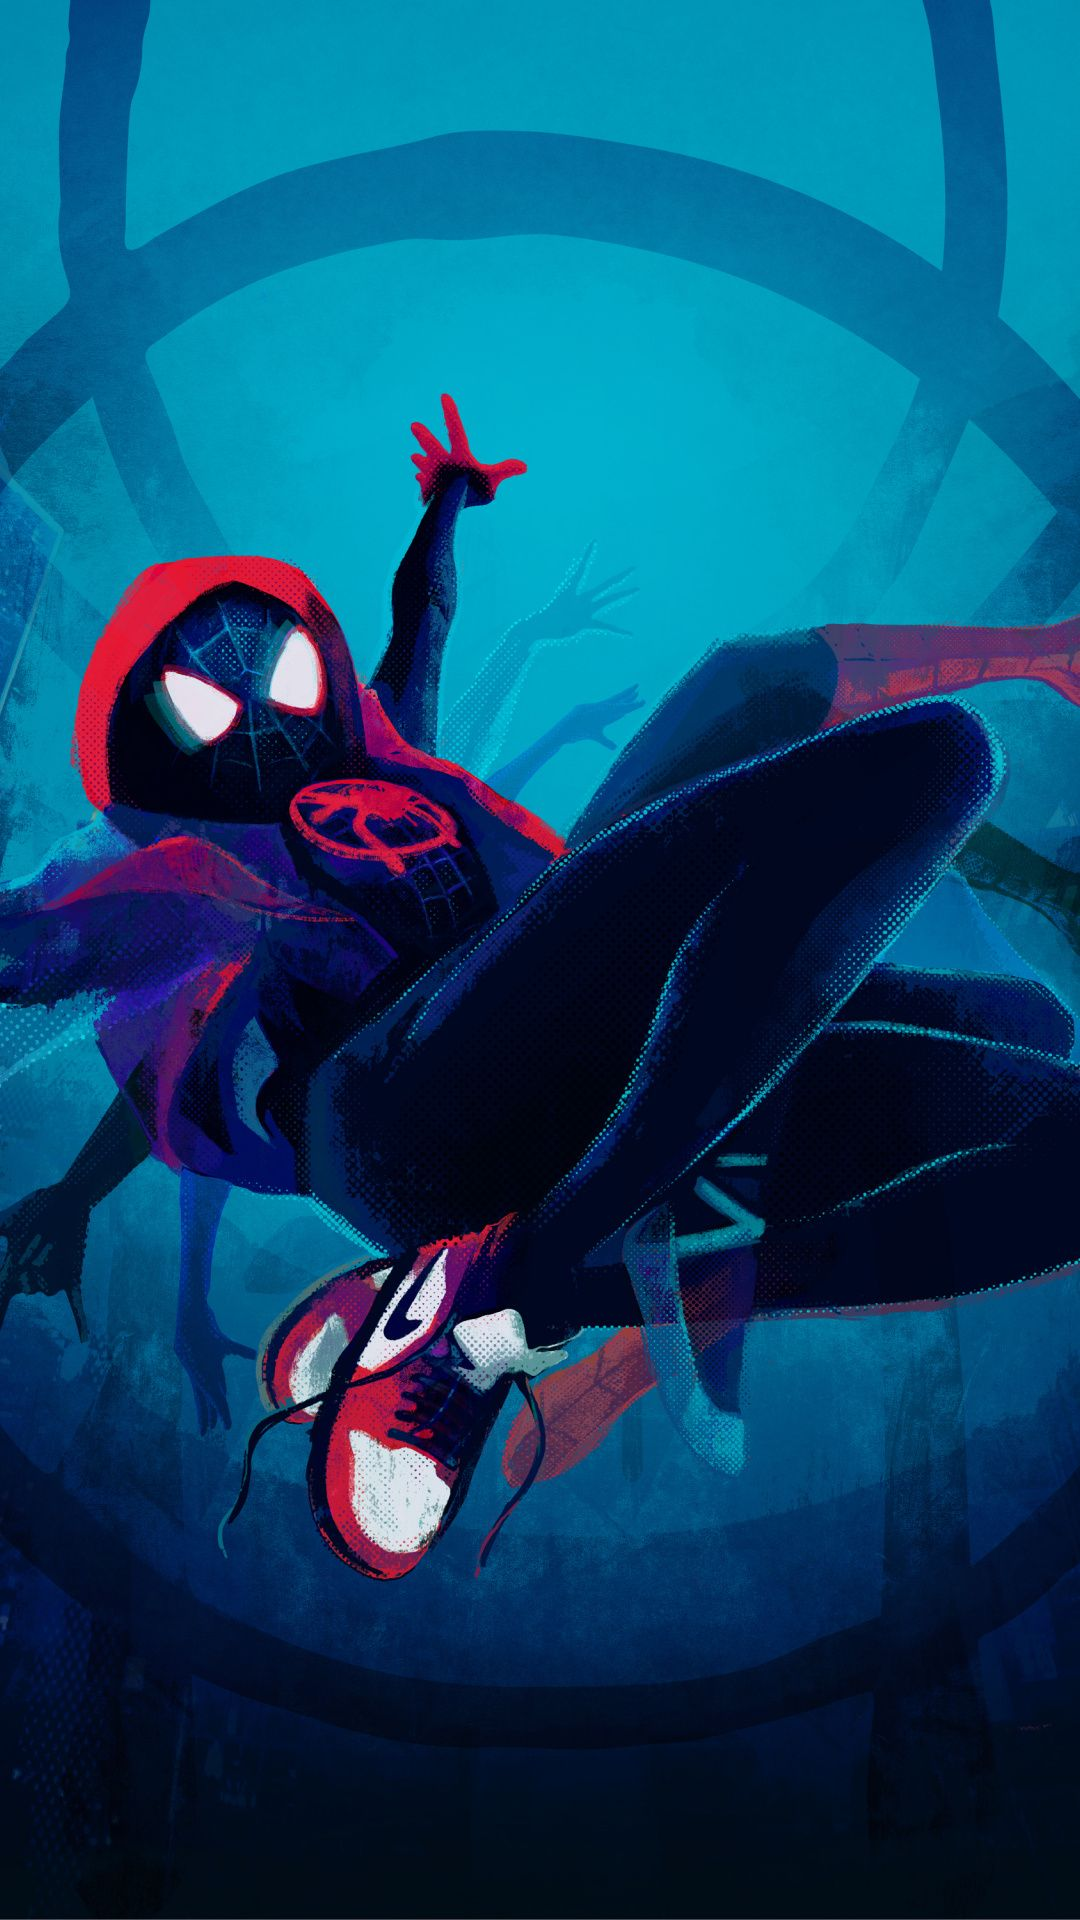 Spider Man Into The Spider Verse Artwork Black Wallpaper Spiderman Artwork Spiderman Spiderman Art